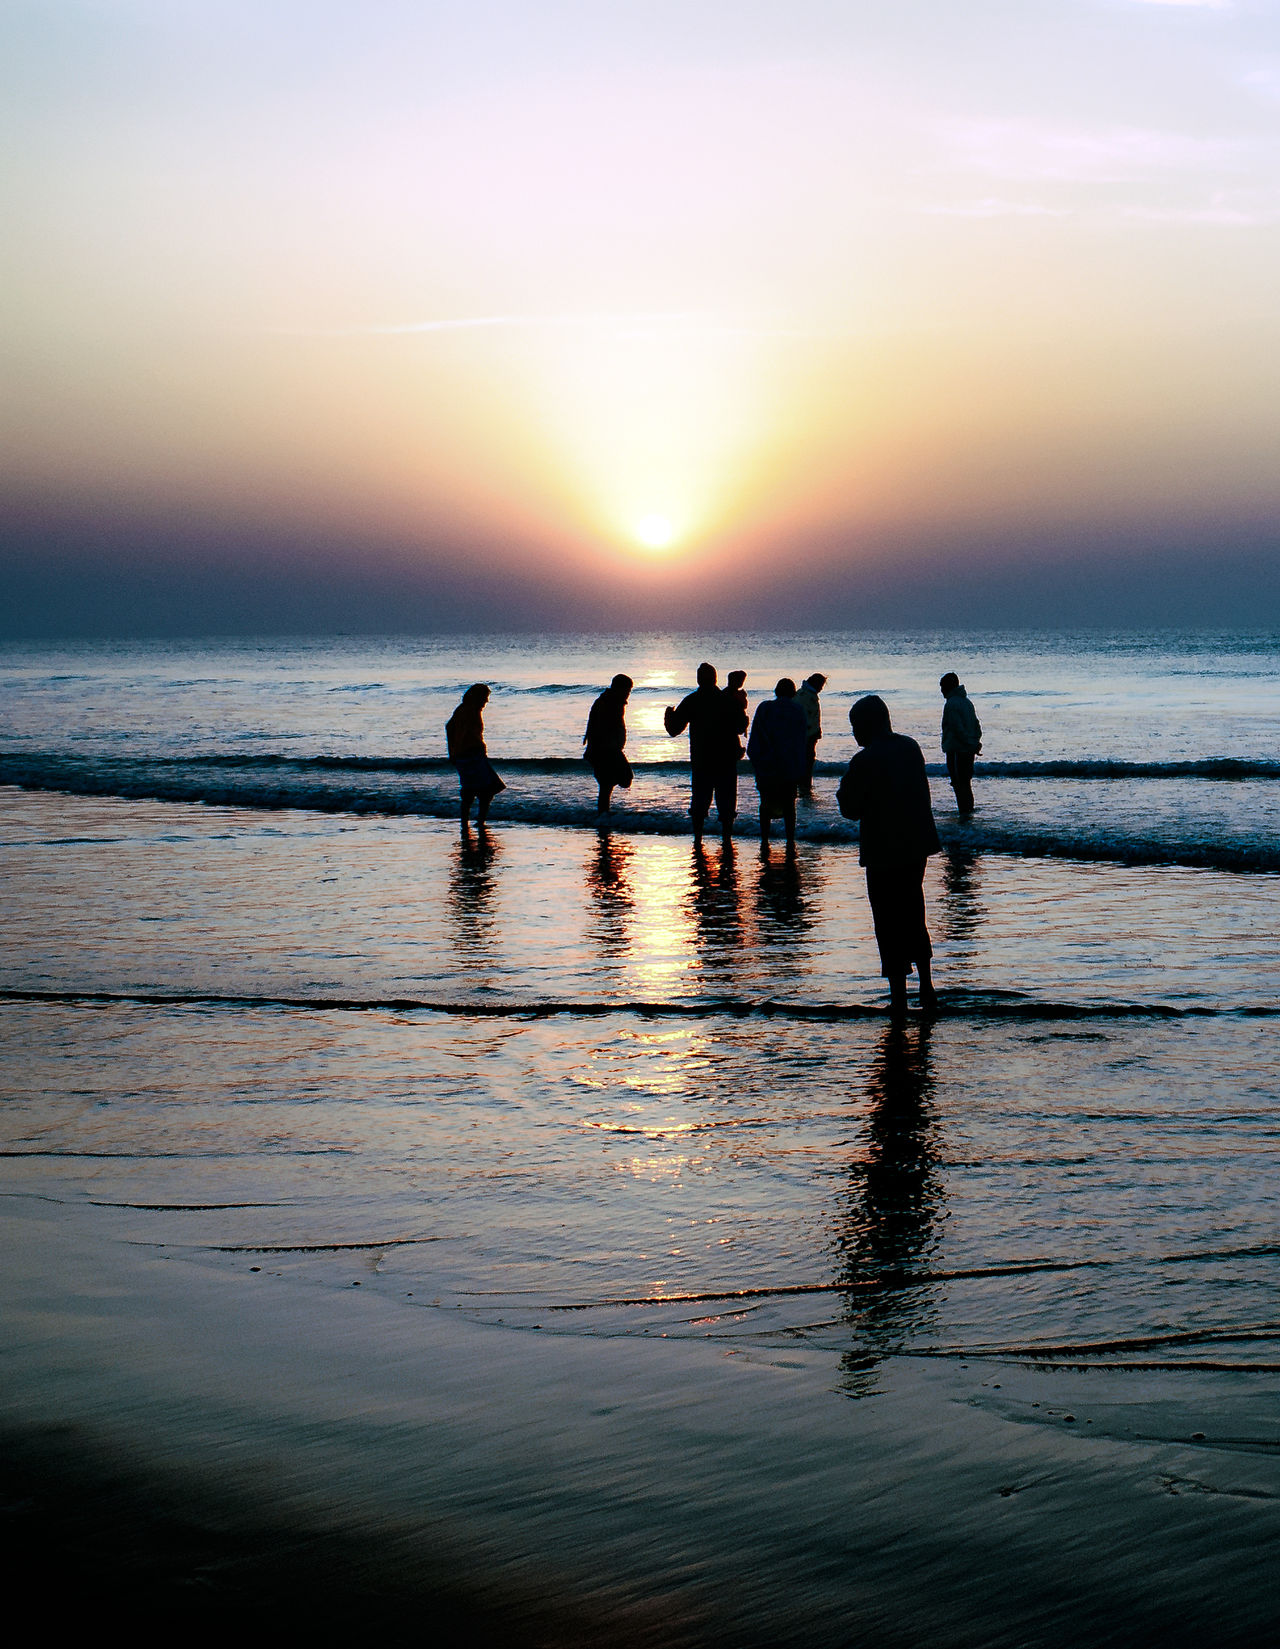 Another Sunrise. Sea Reflection Silhouette Water Outdoors Beach Nature Horizon Over Water People Beauty In Nature Sky Morning Dawn Sunrise - Dawn Sunrise Colors Moment Tranquil Peaceful Travel Photography Tranquility Beauty In Nature Nature Sunlit Serene